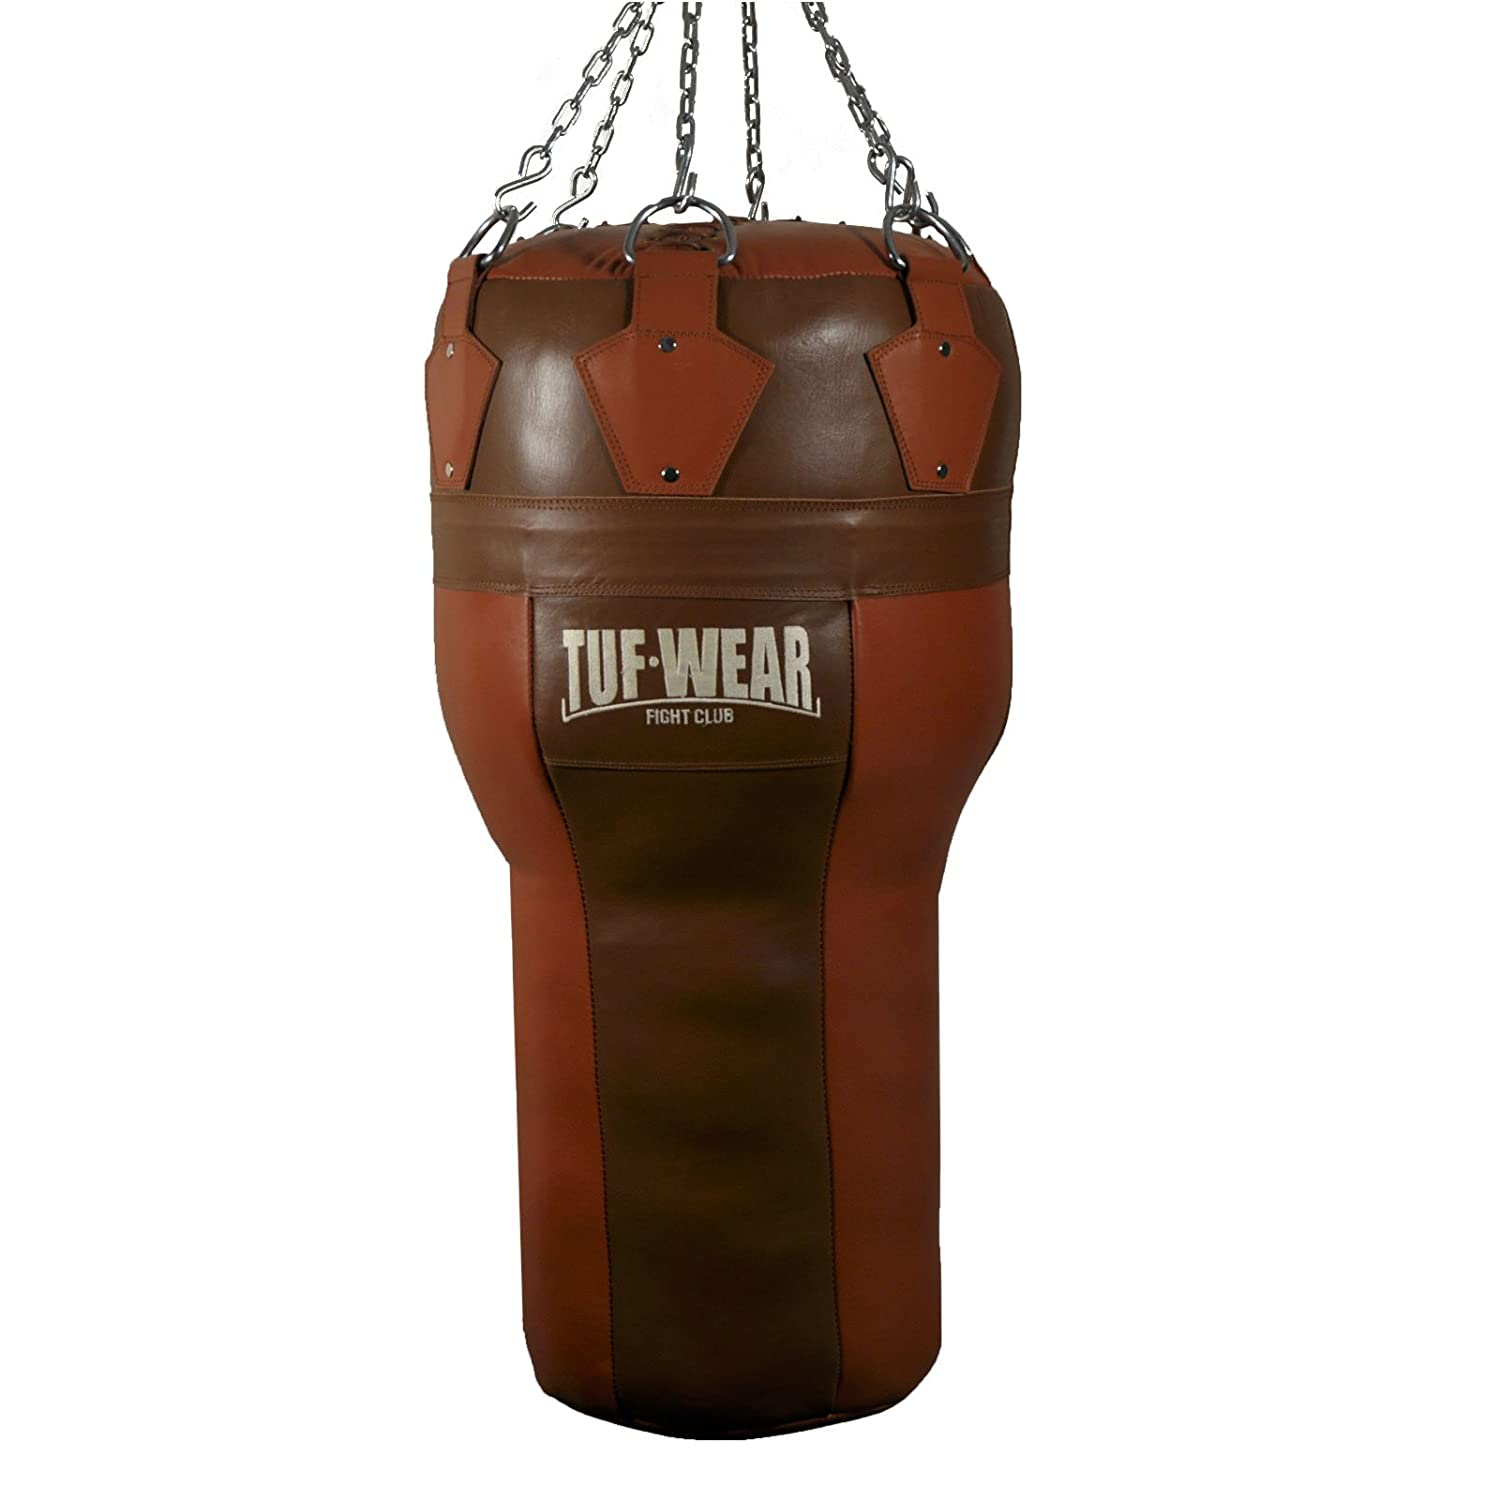 TUF WEAR Boxing Punchbag 4 Hook Chains